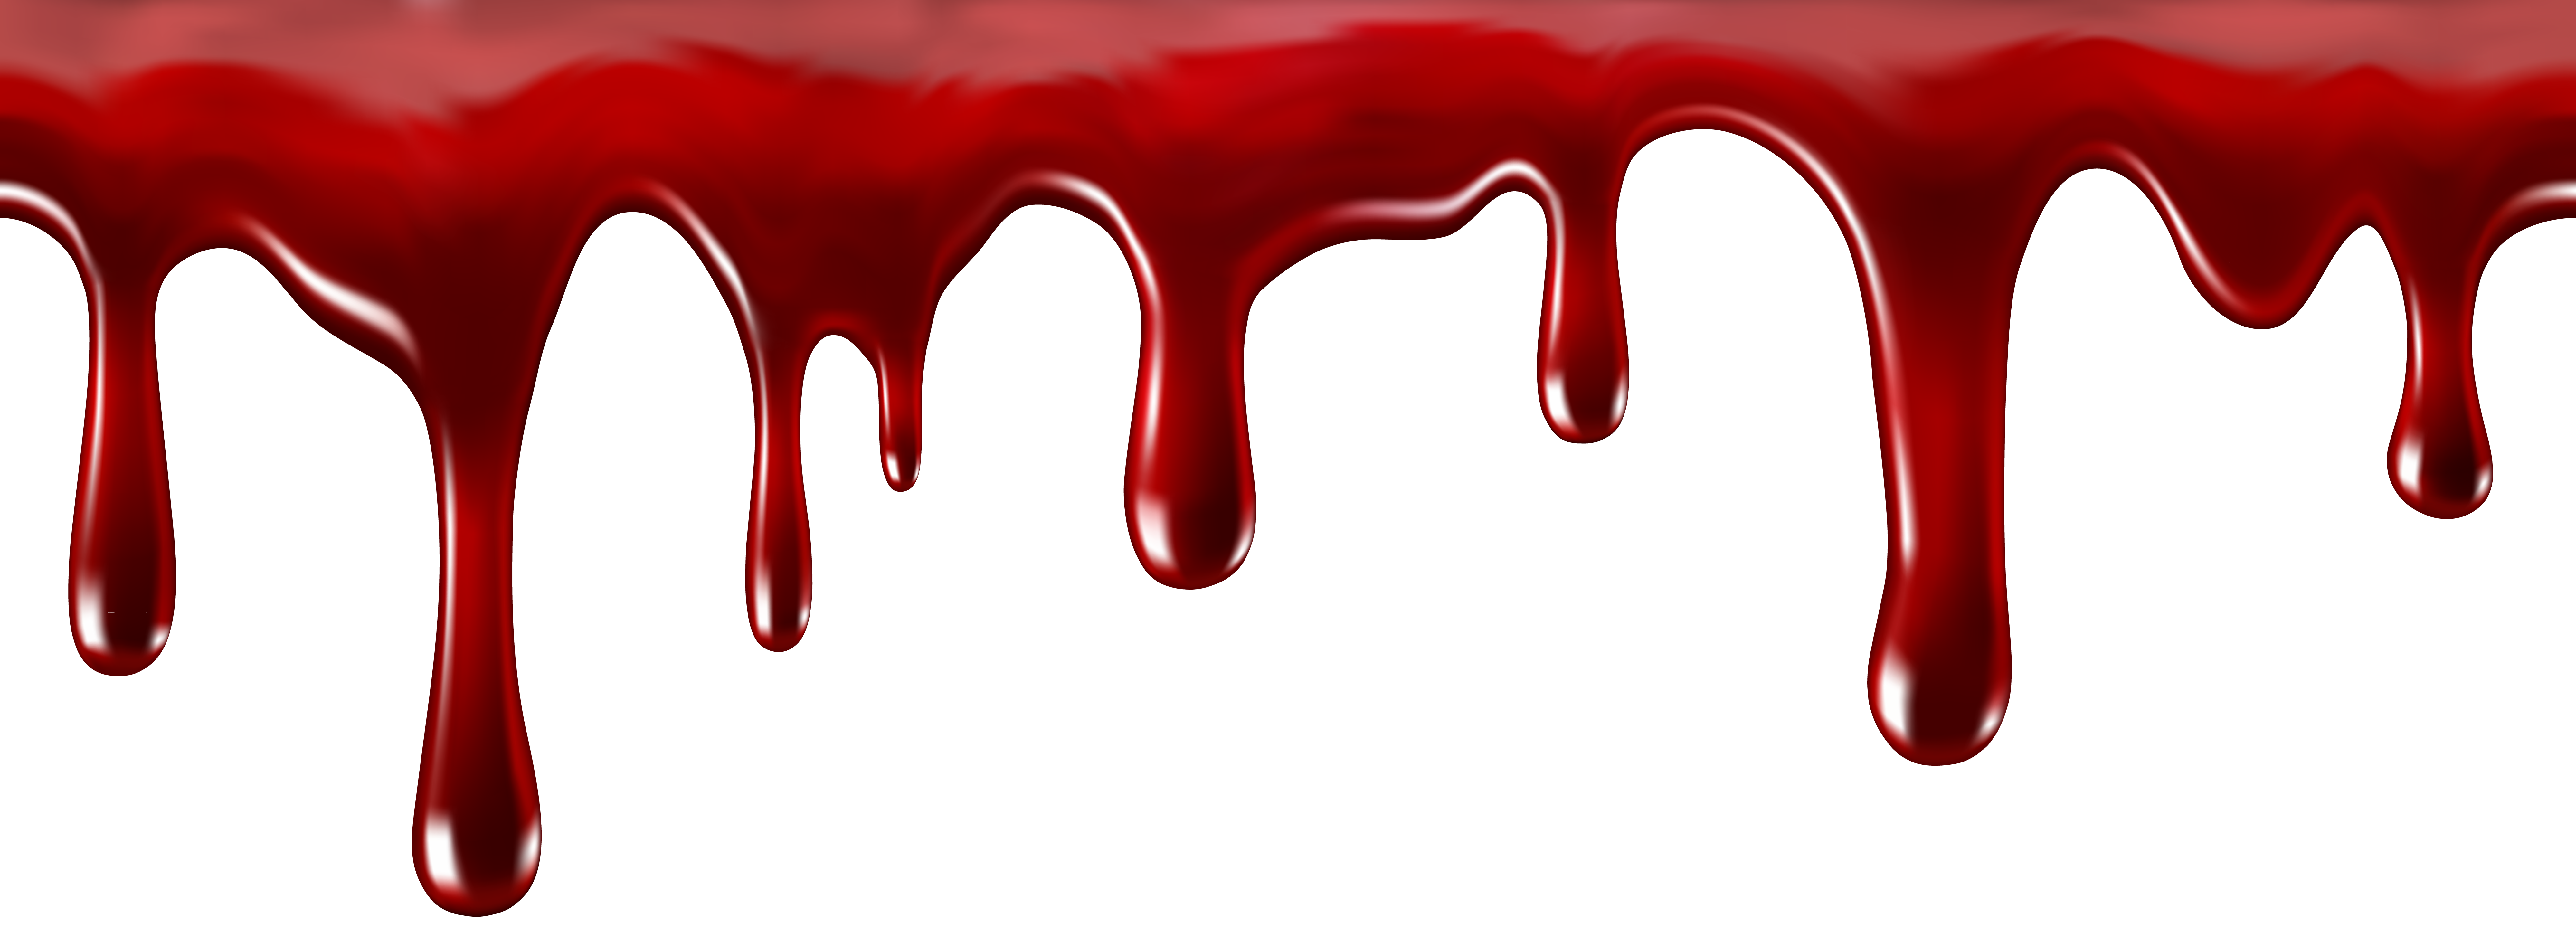 Blood clipart Blood Image PNG View Gallery